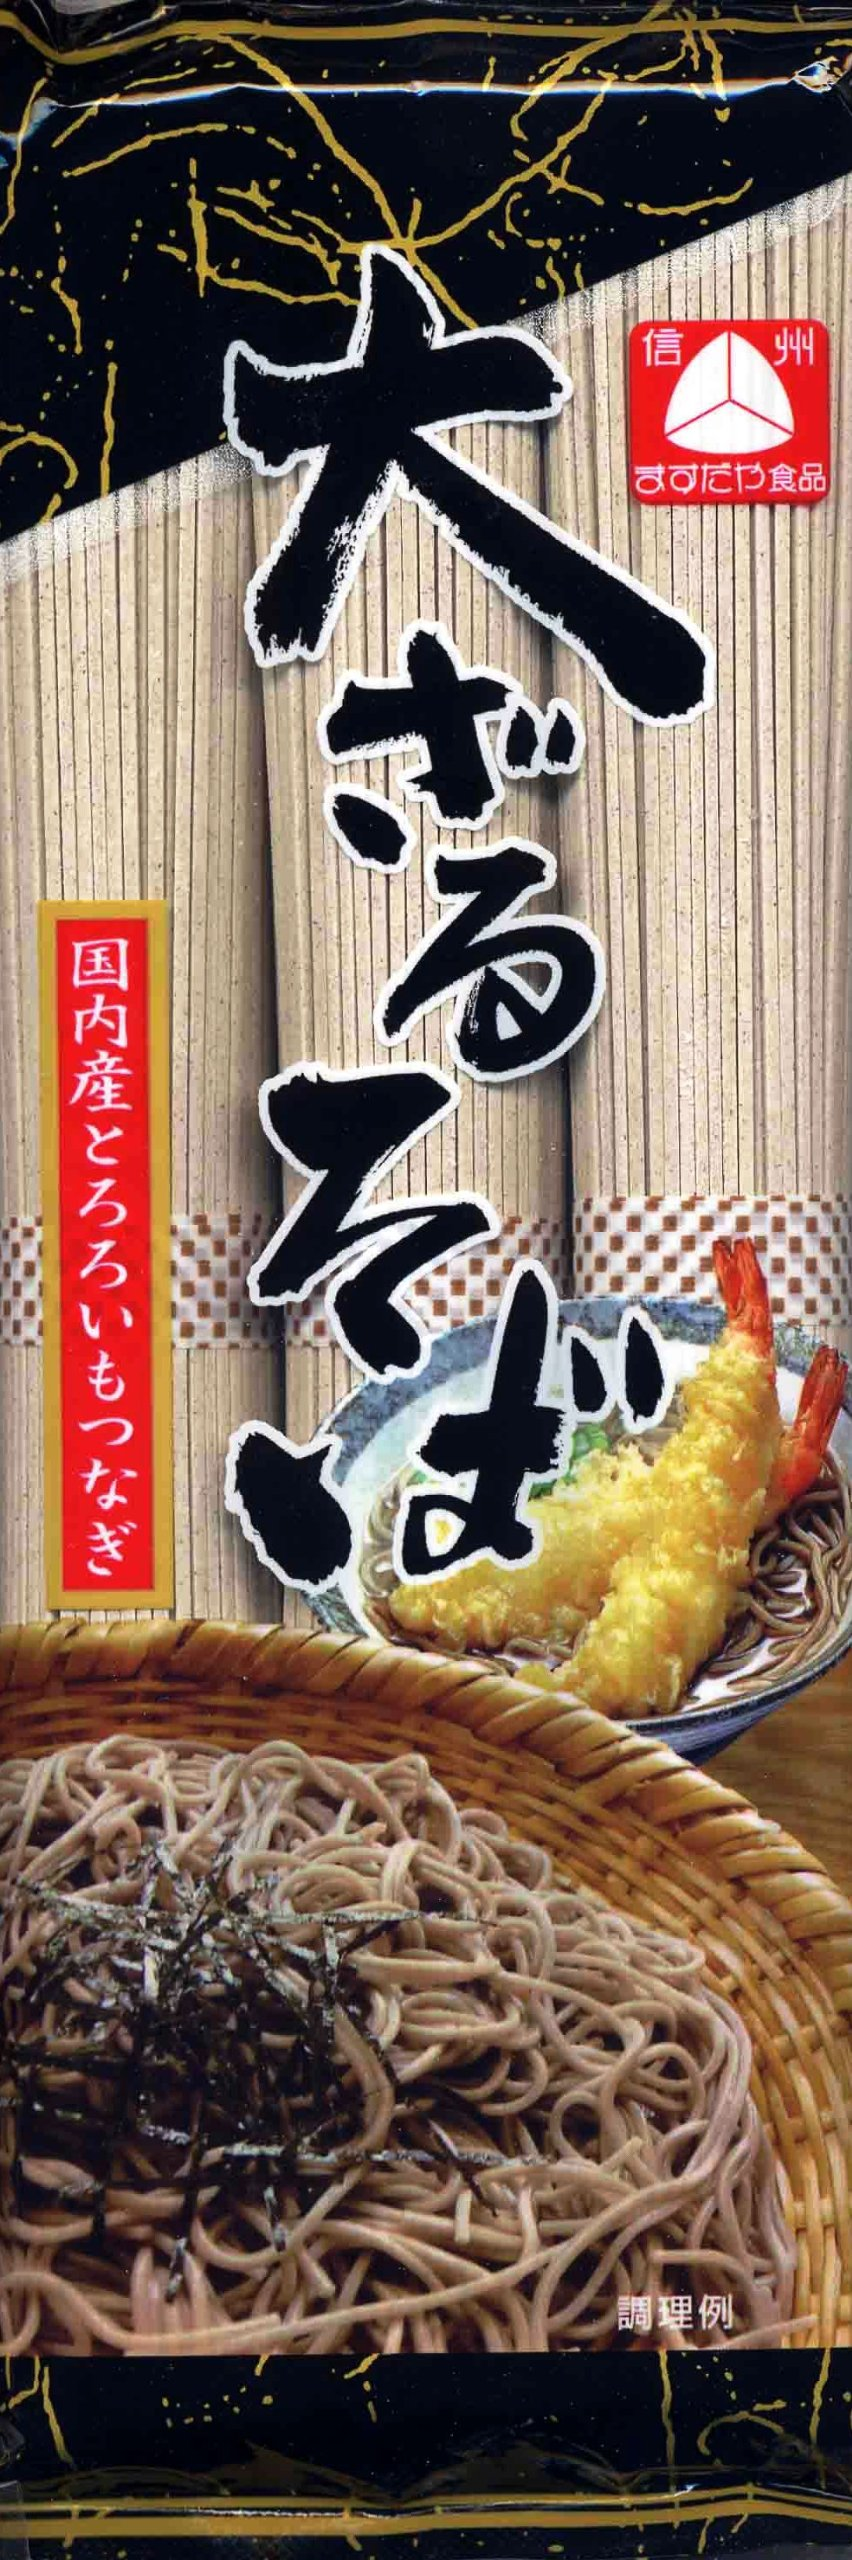 Masuda-ya large cold soba noodles with dipping sauce 360gX5 pieces